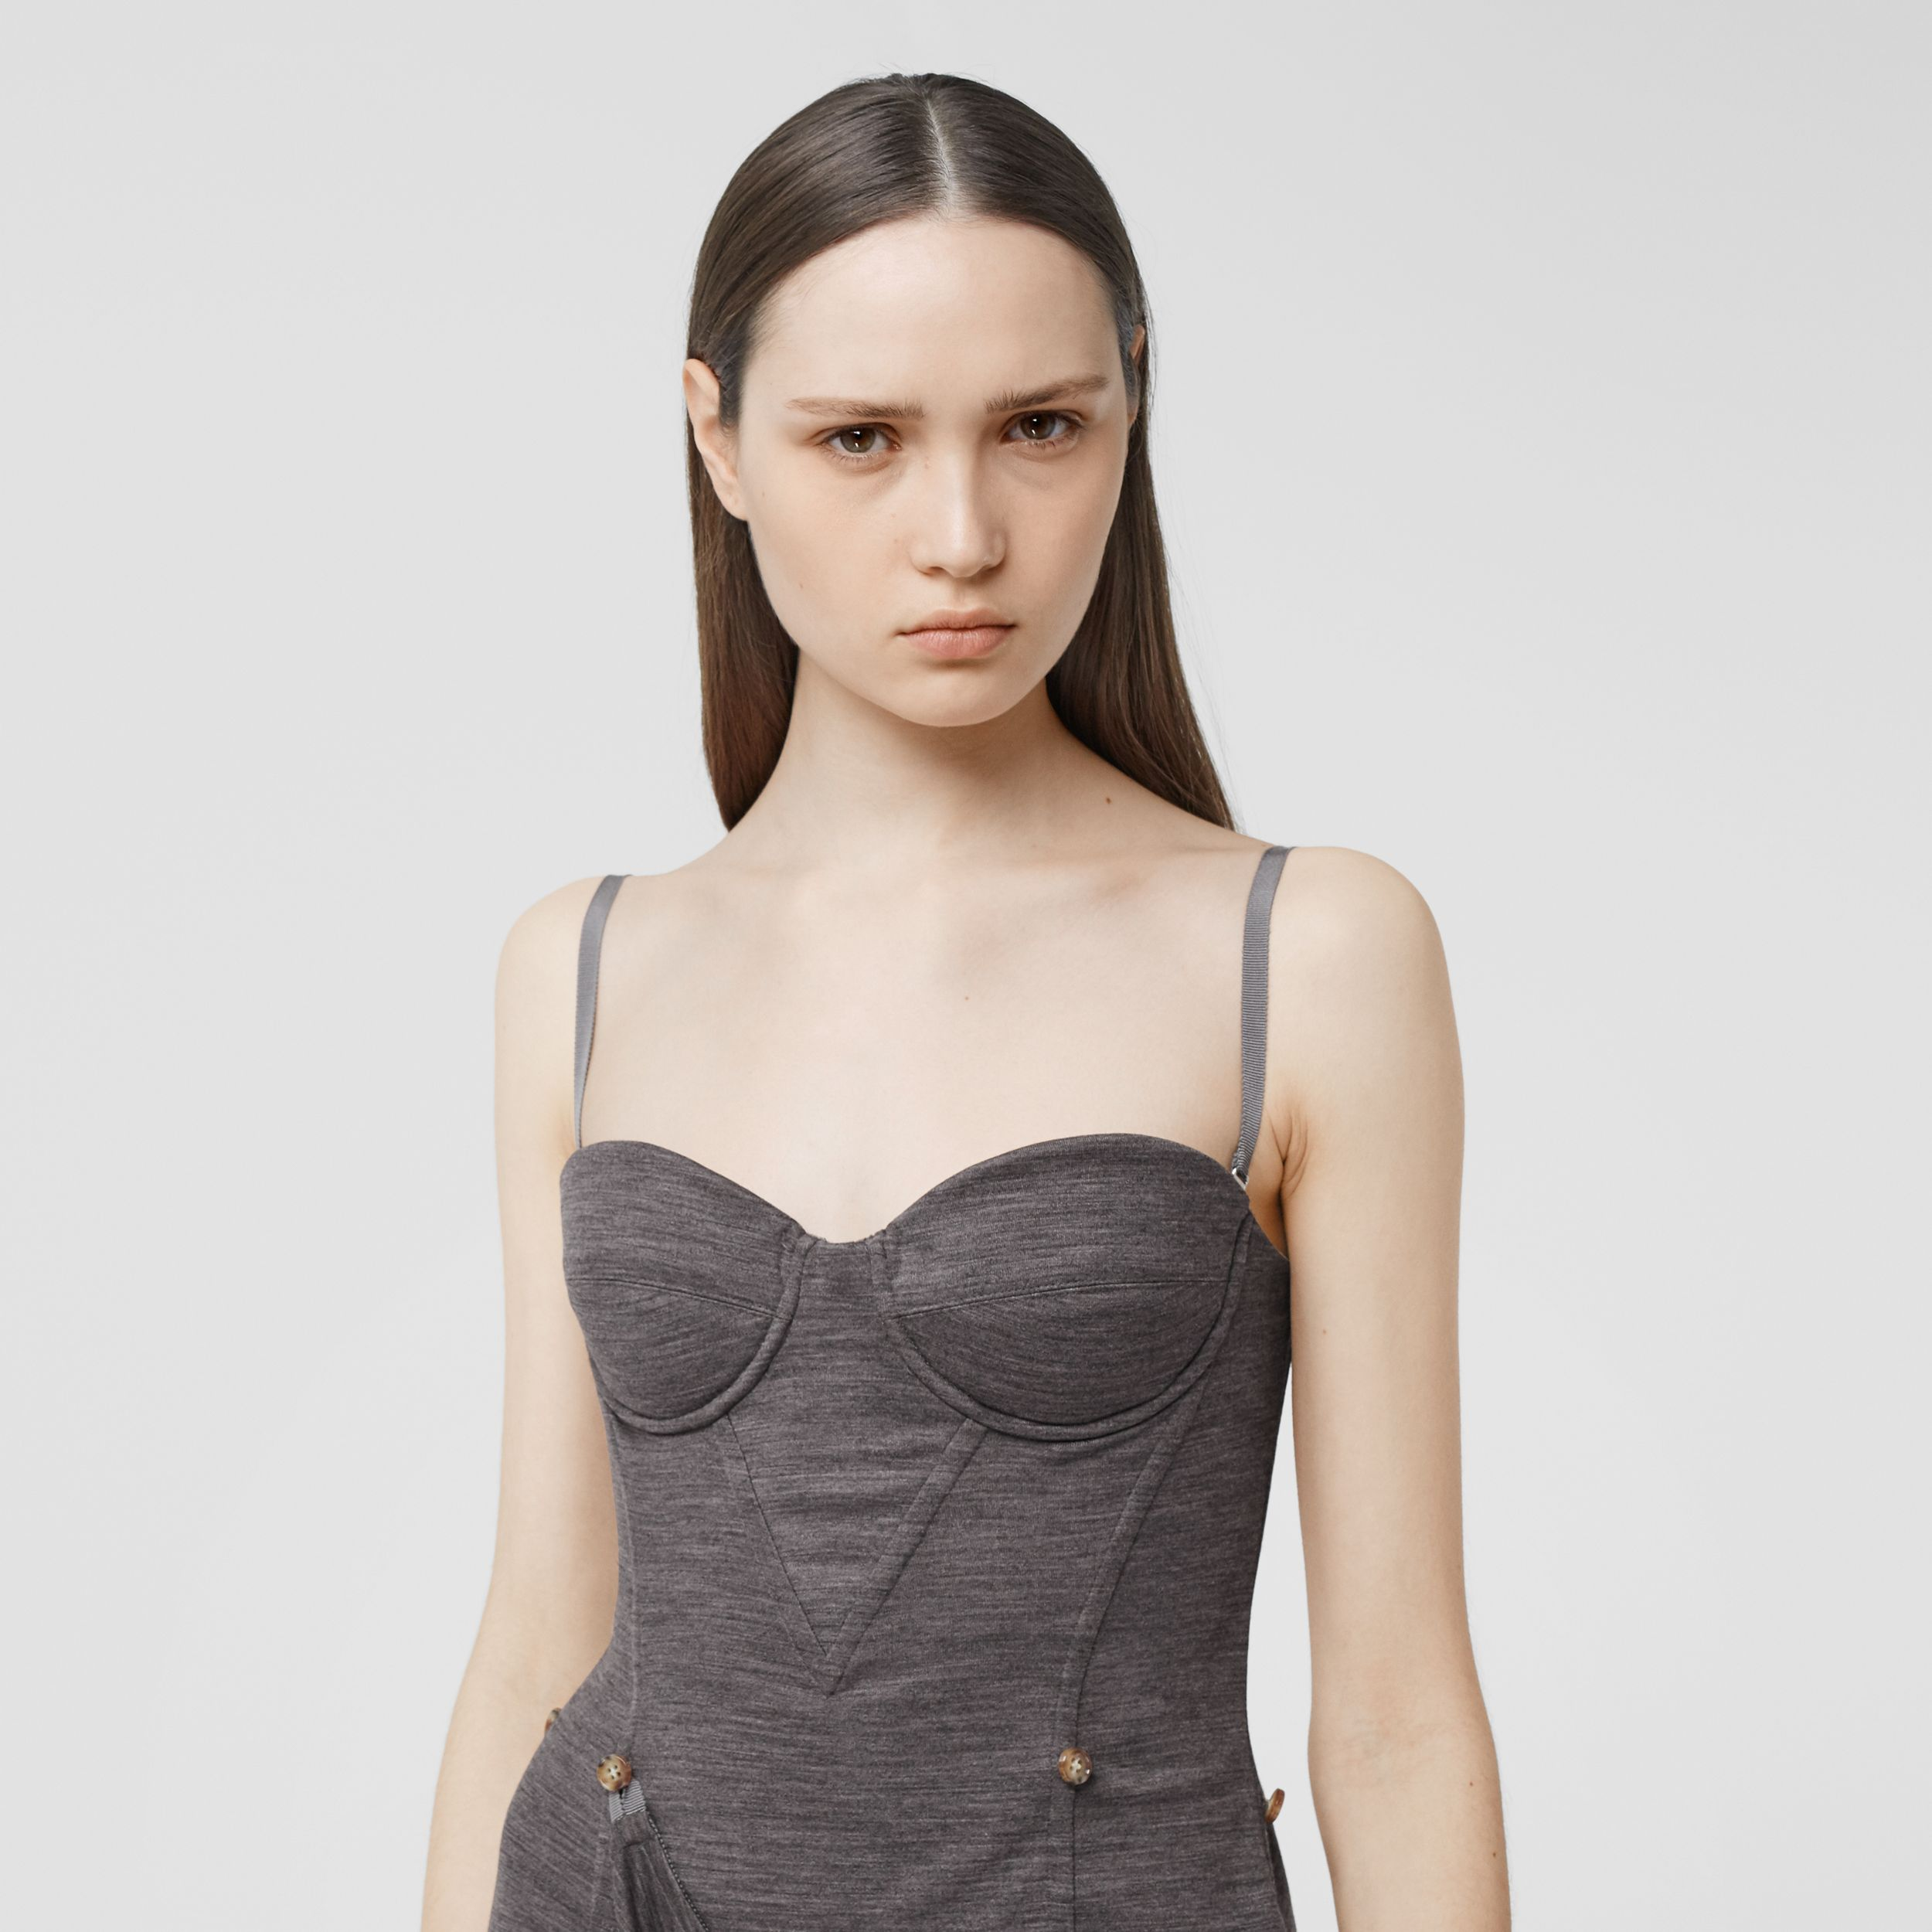 Asymmetric Technical Wool Corset Dress in Charcoal Grey - Women | Burberry Australia - 2